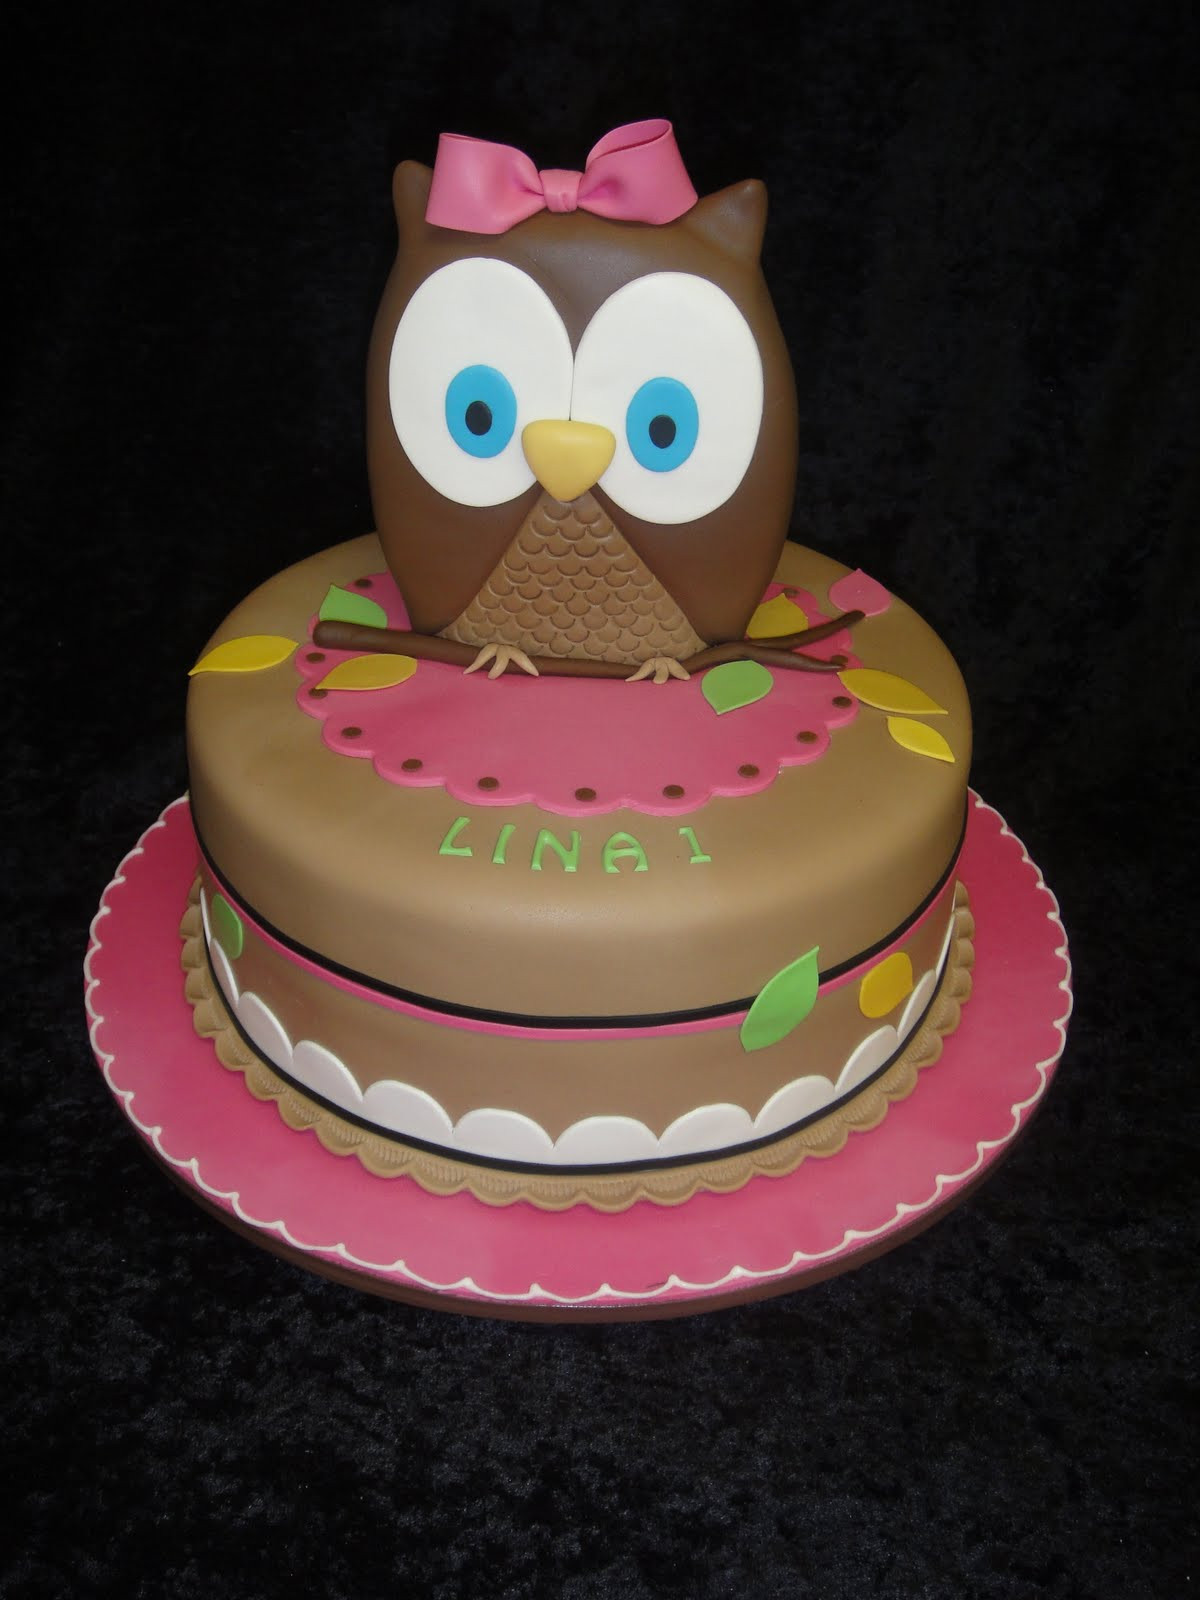 Funny Birthday Cakes Images  Cake Blog Because Every Cake has a Story Fun Birthday Cakes